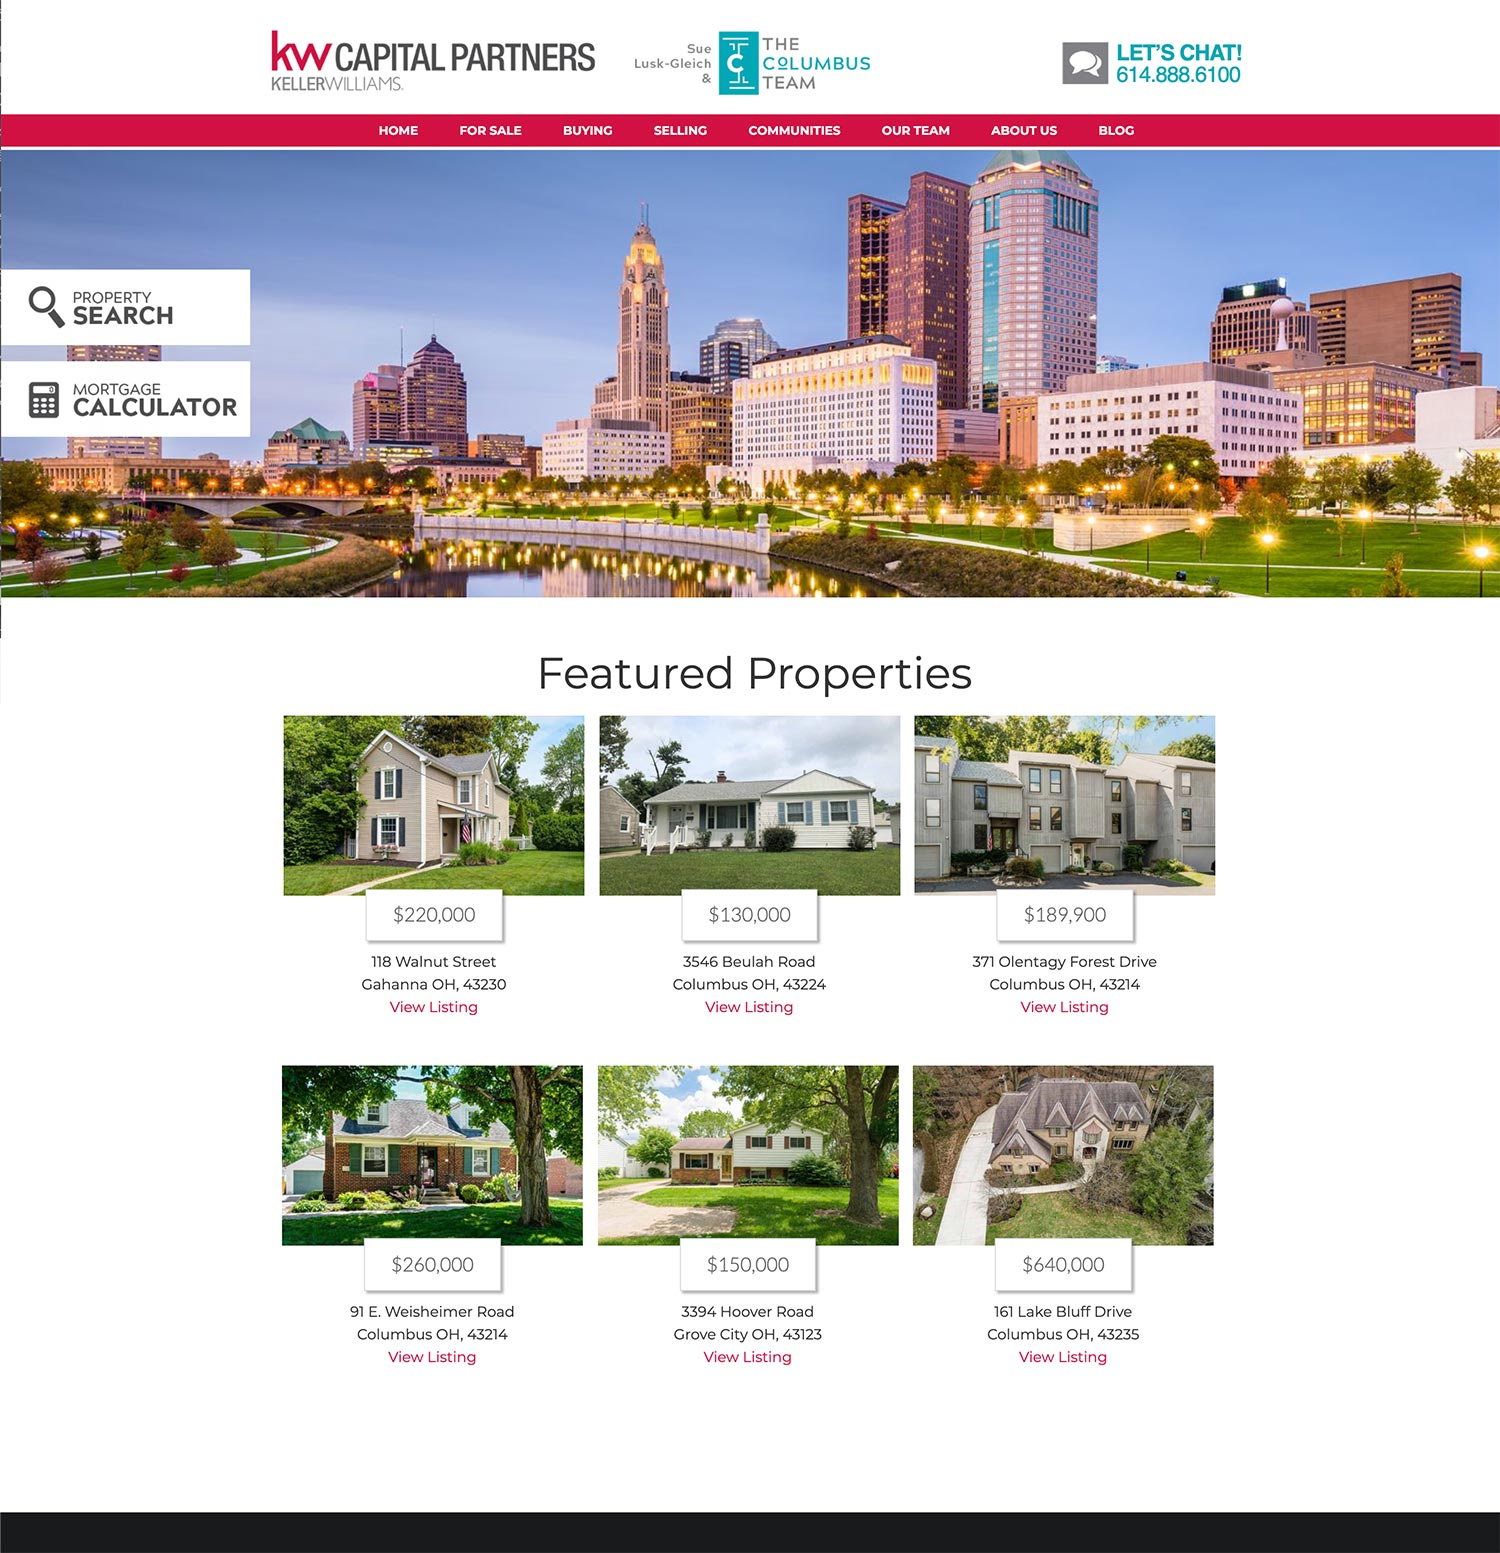 Updated design for The Columbus Team, Keller Williams Realty